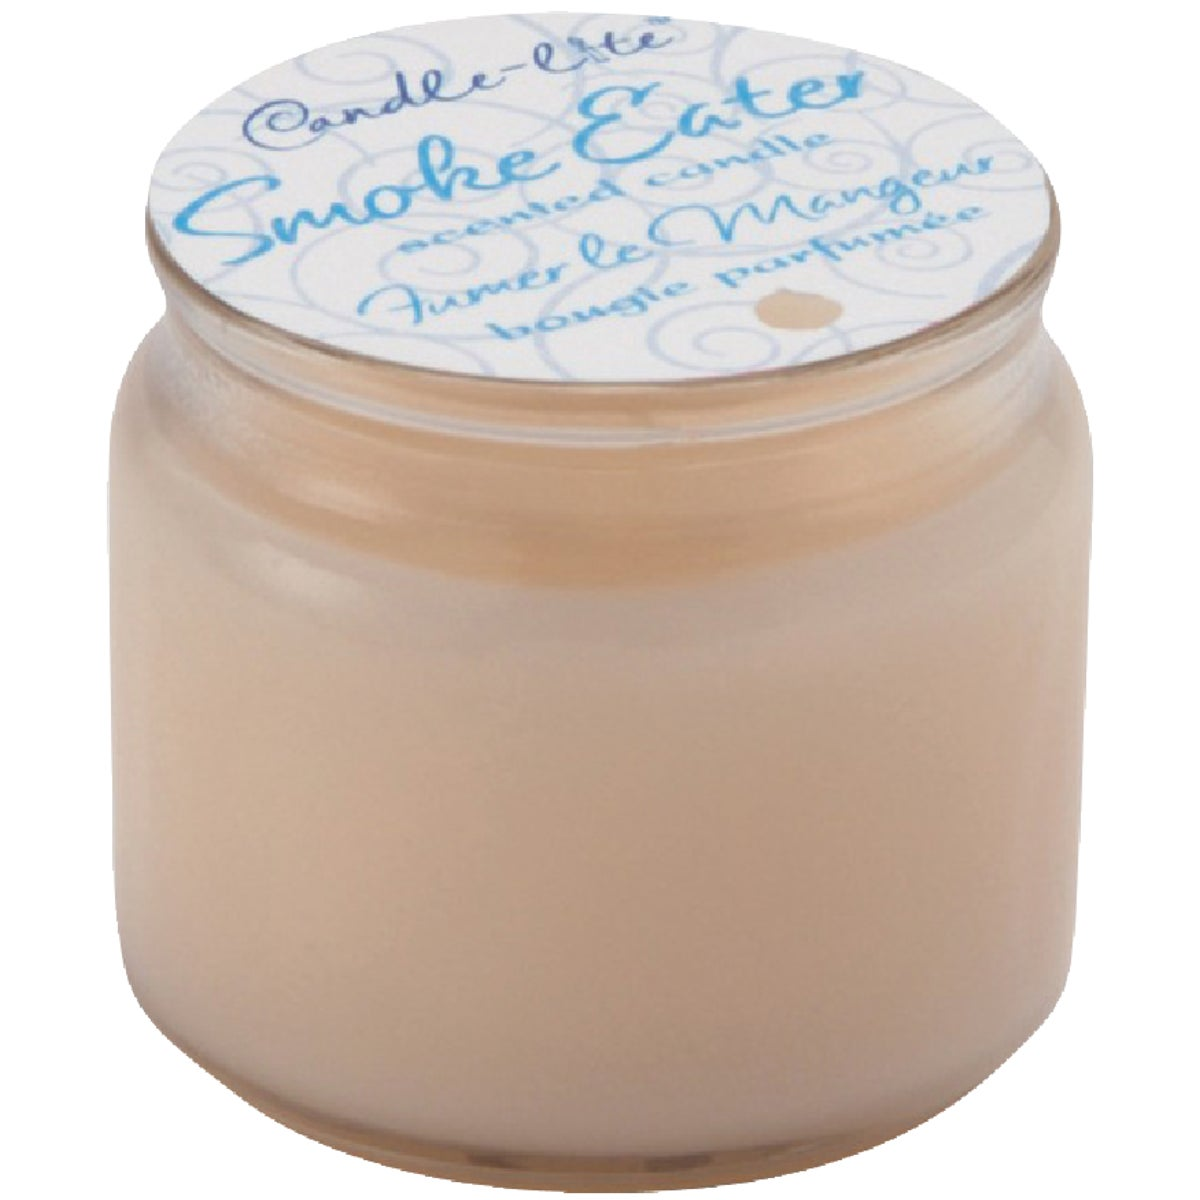 SMOKE EATER CANDLE - 2445900 by Candle Lite Co